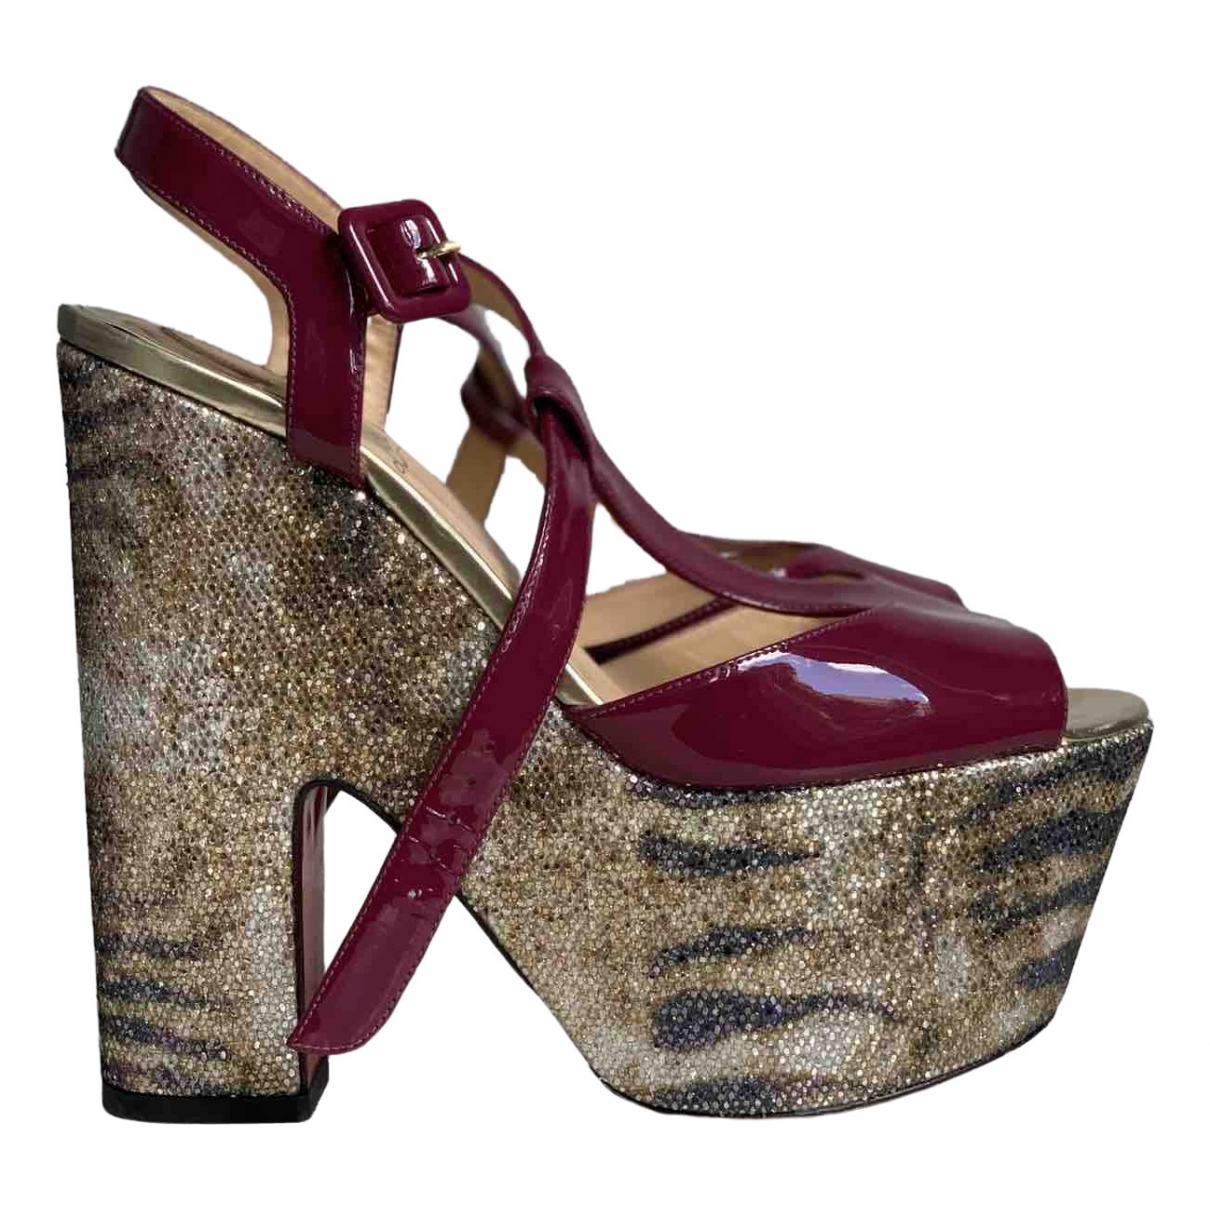 Christian Louboutin \N Burgundy Leather Sandals for Women 39.5 EU